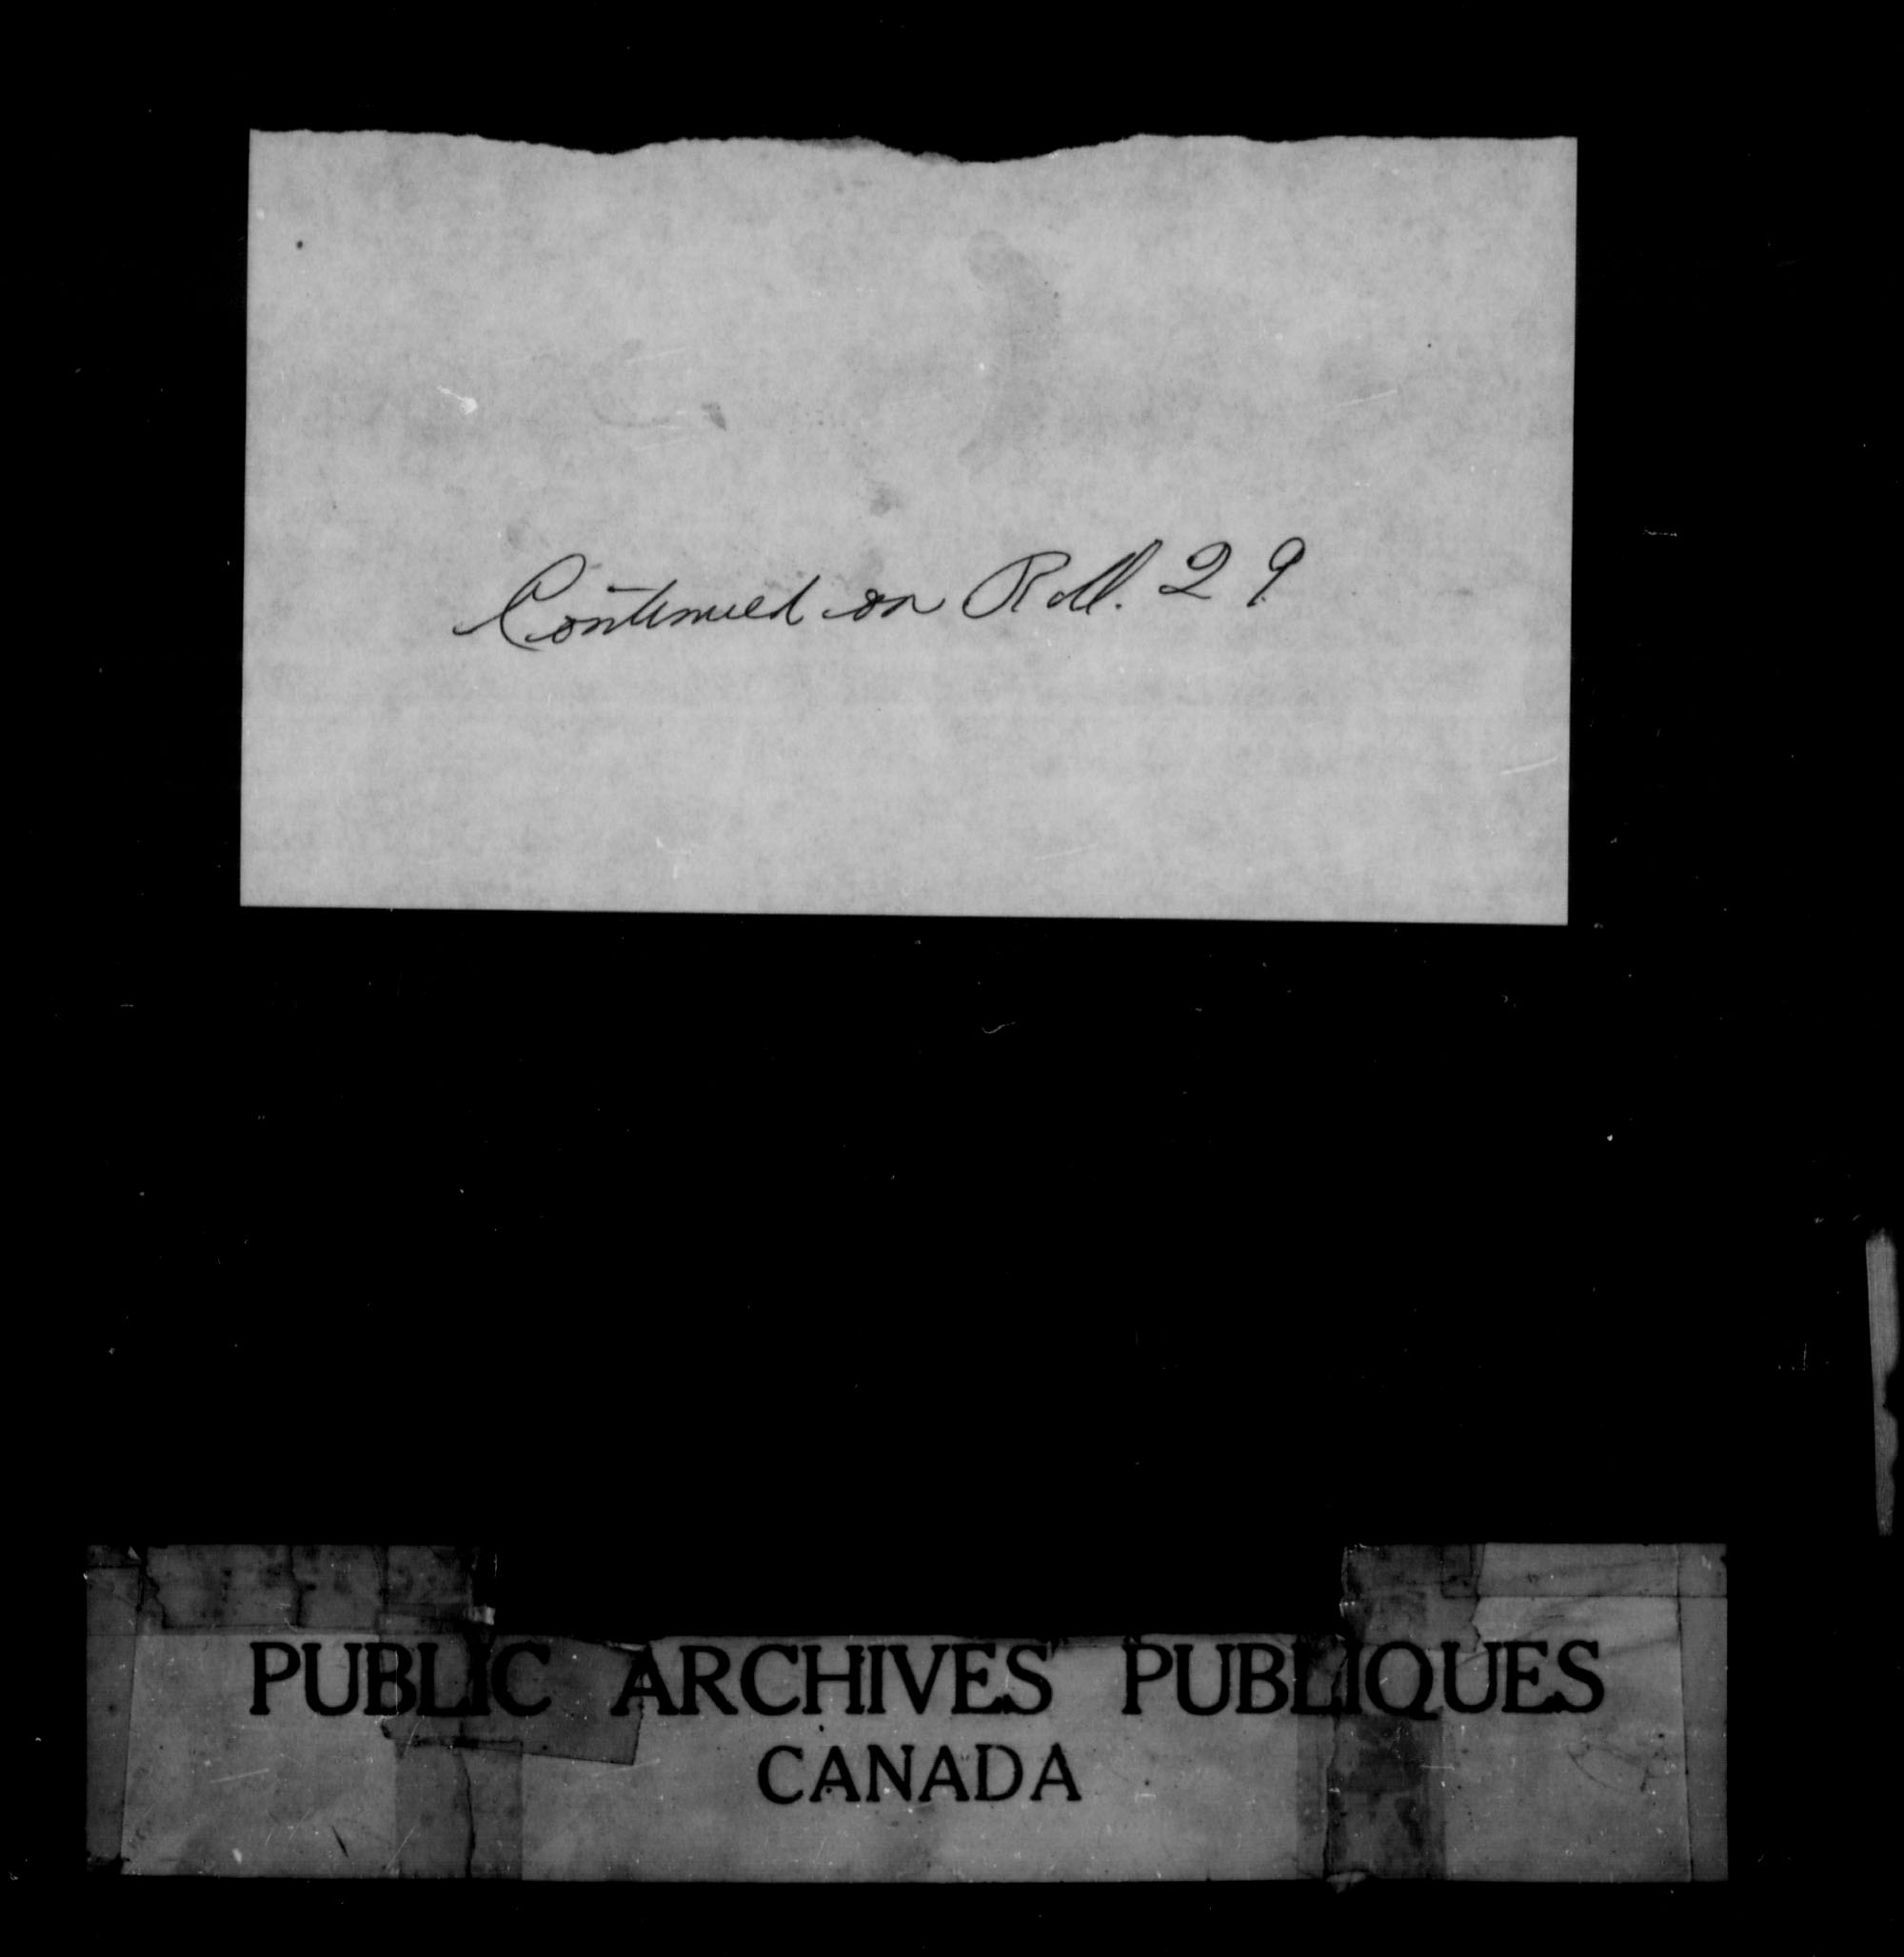 Title: Upper Canada Land Petitions (1763-1865) - Mikan Number: 205131 - Microform: c-1636